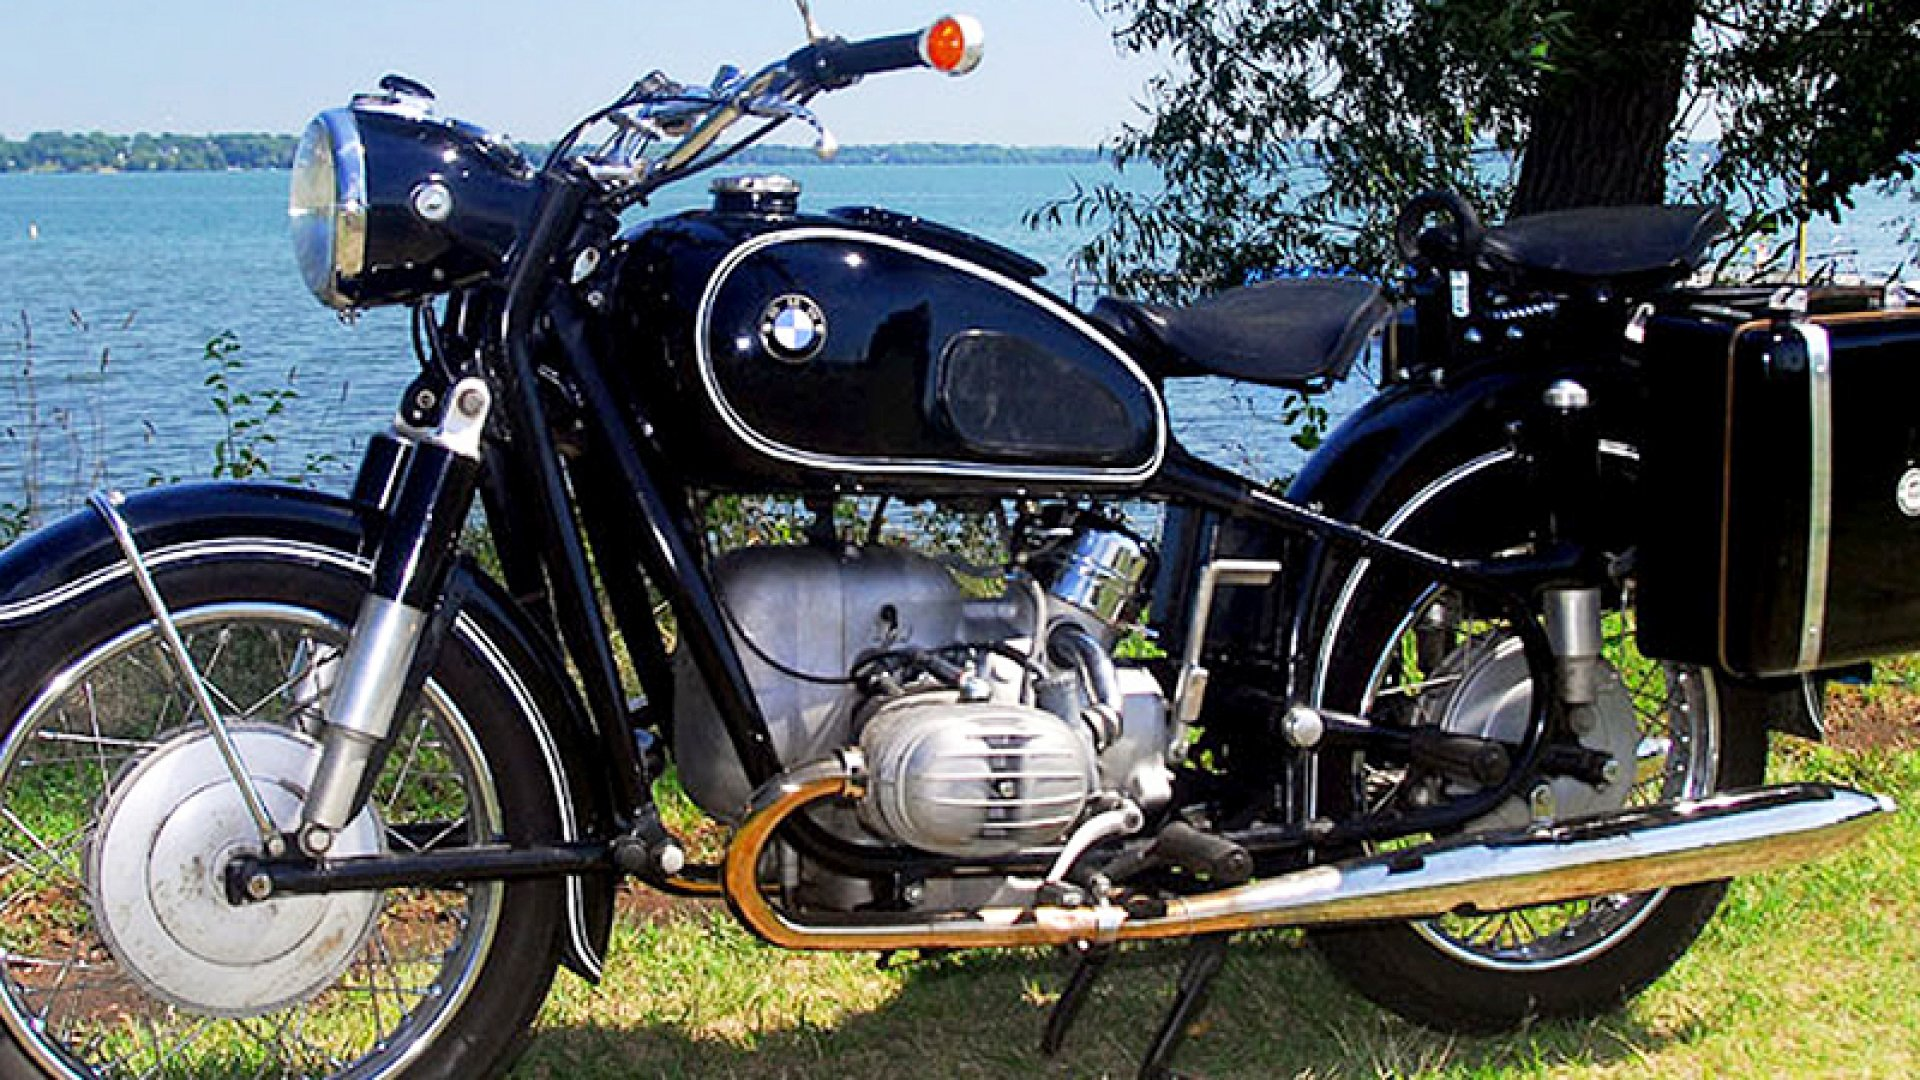 Steve Jobs's bike of choice was the 1966 BMW R60/2. (1967 BMW R60/2 pictured above.)